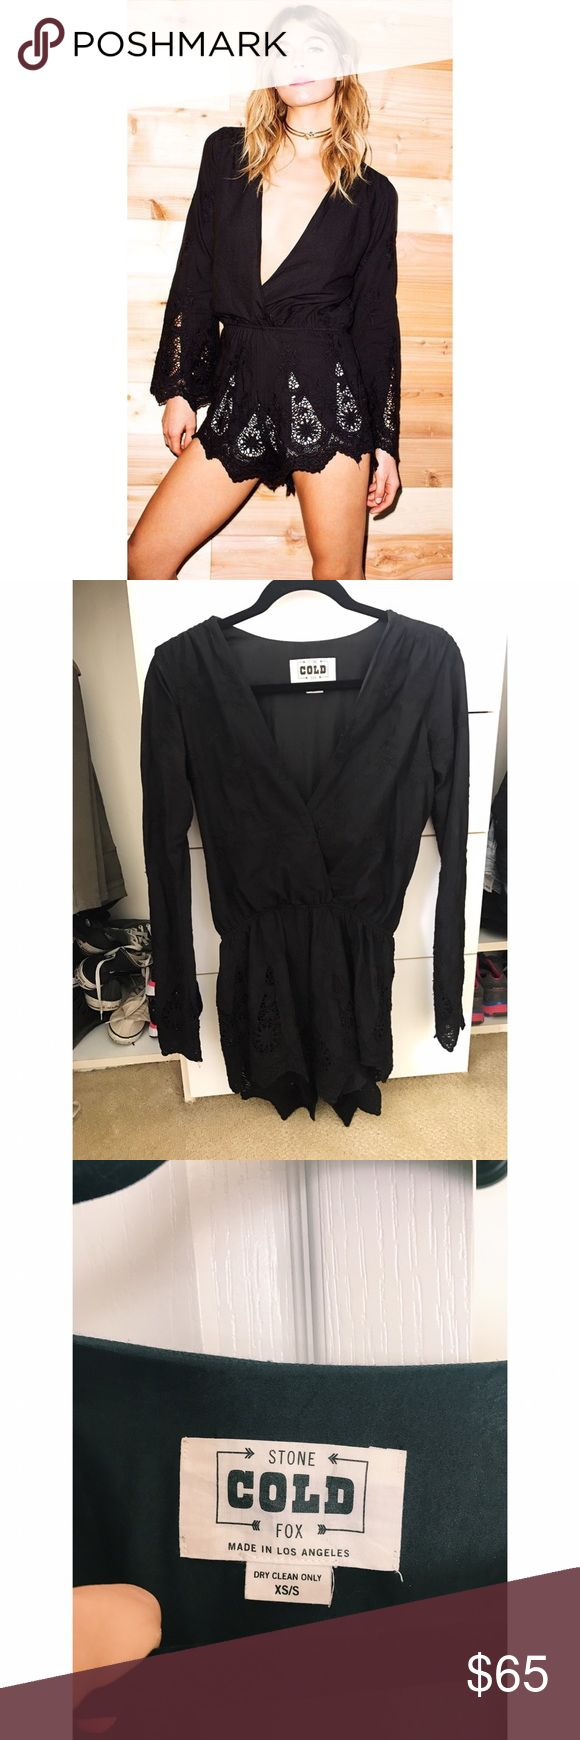 BNWOT STONE COLD FOX LOCALS JUMPER IN BLACK Size xs/s. bought for final sale directly off stone cold fox website but is too small on me and wasn't able to return it. Very form fitting and can be dressed up or down, crotchet detailing throughout romper, beautiful design Stone Cold Fox Pants Jumpsuits & Rompers